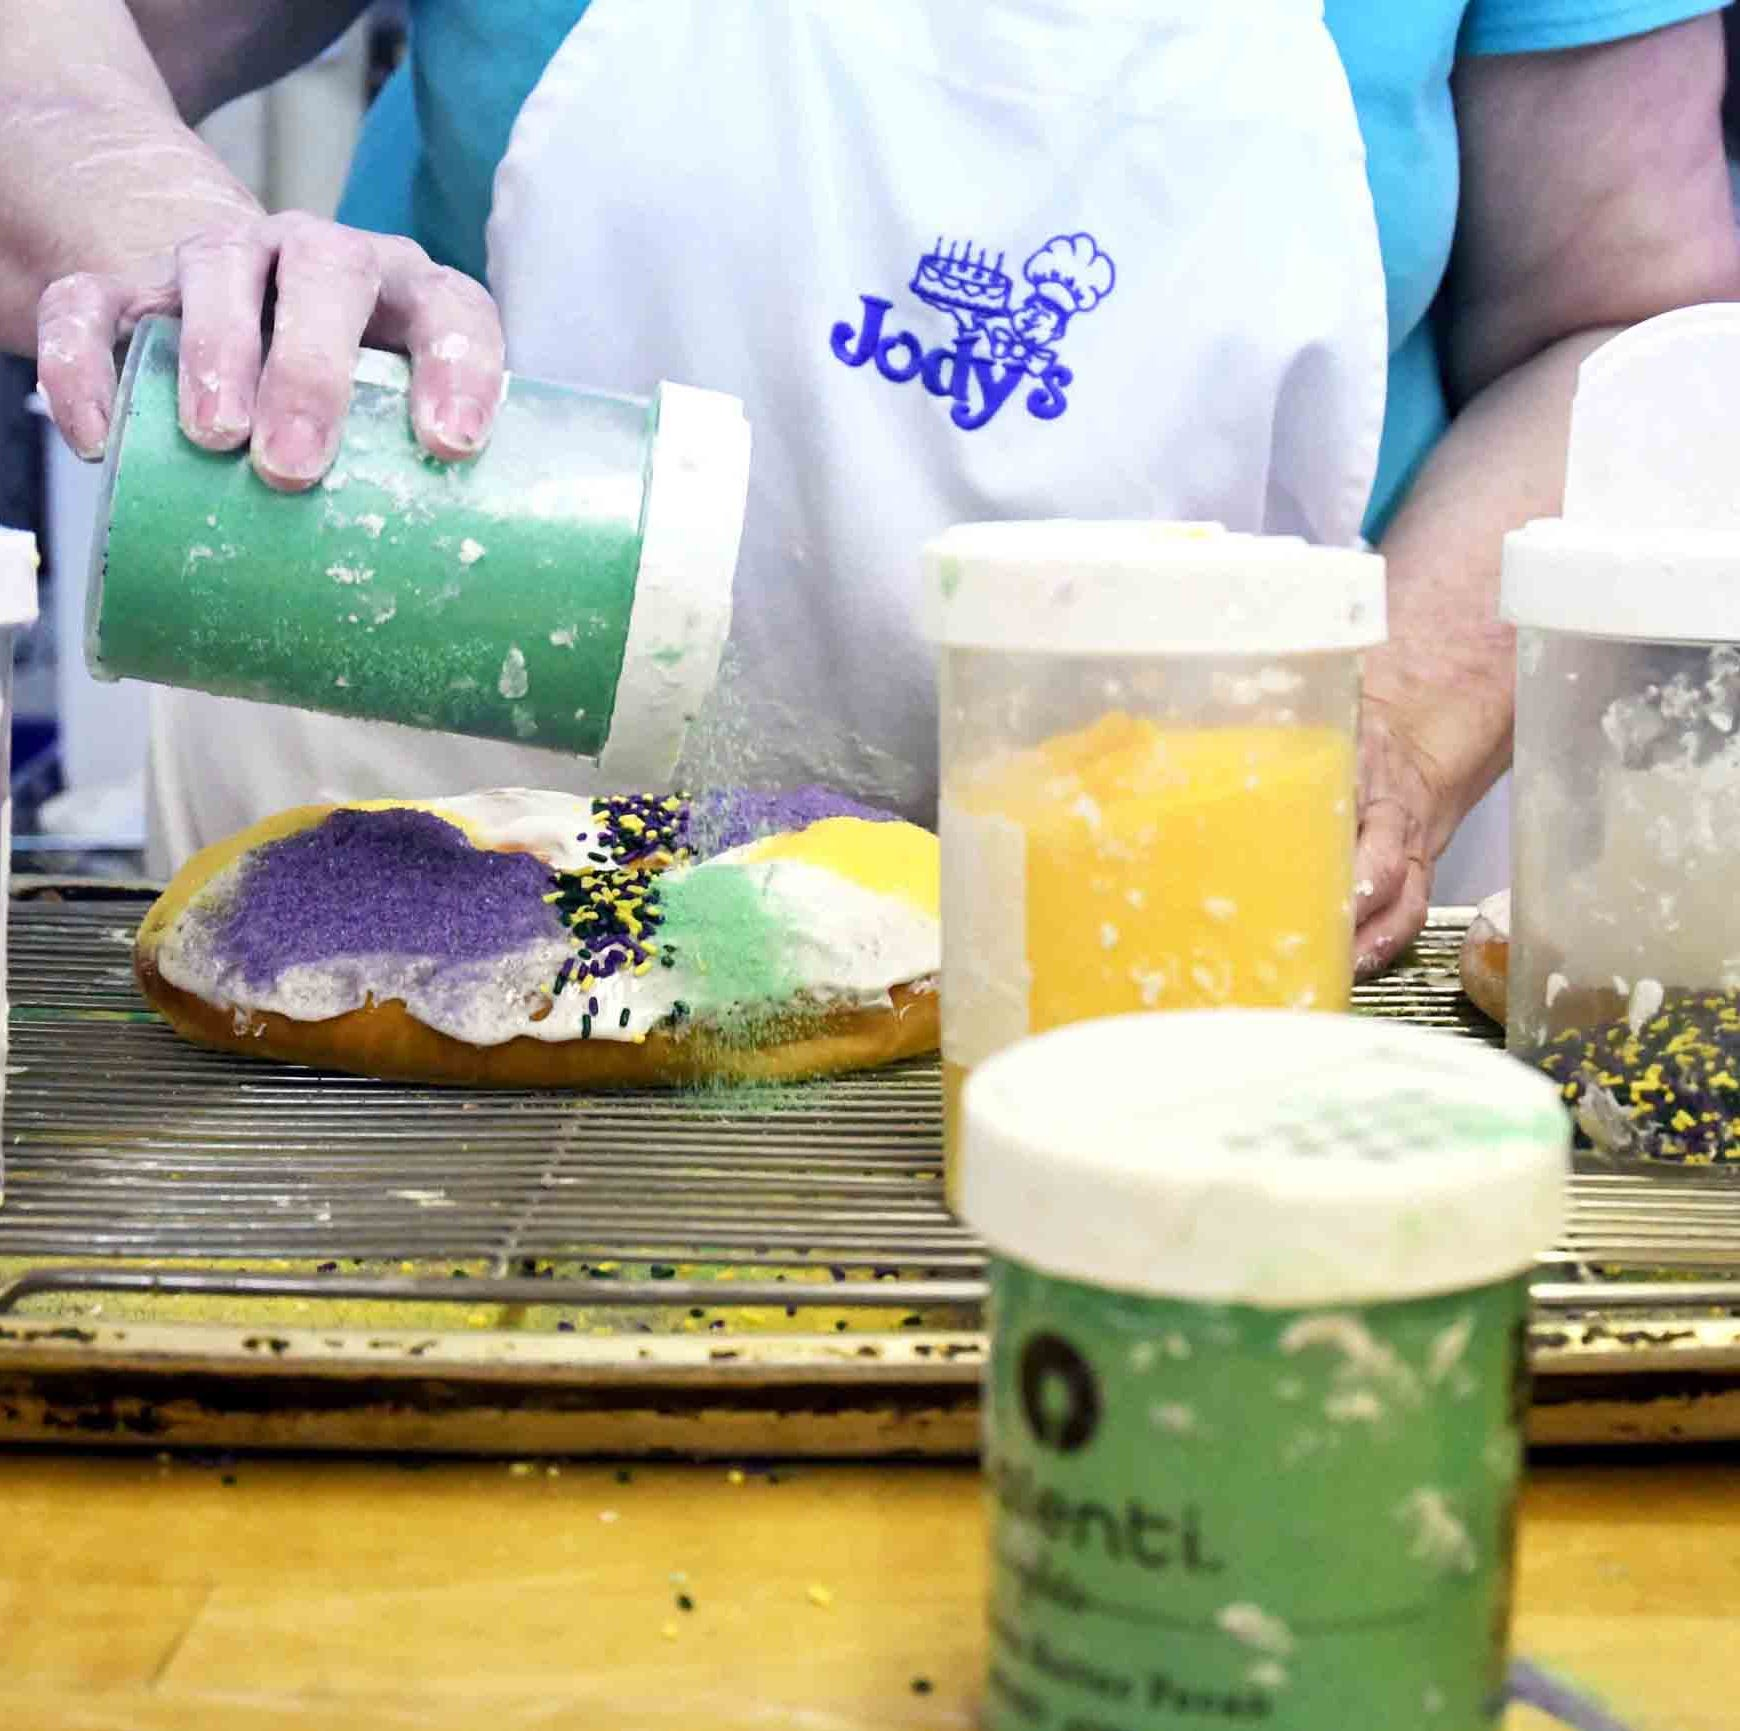 It's Mardi Gras! Where to find king cakes in the Jackson metro